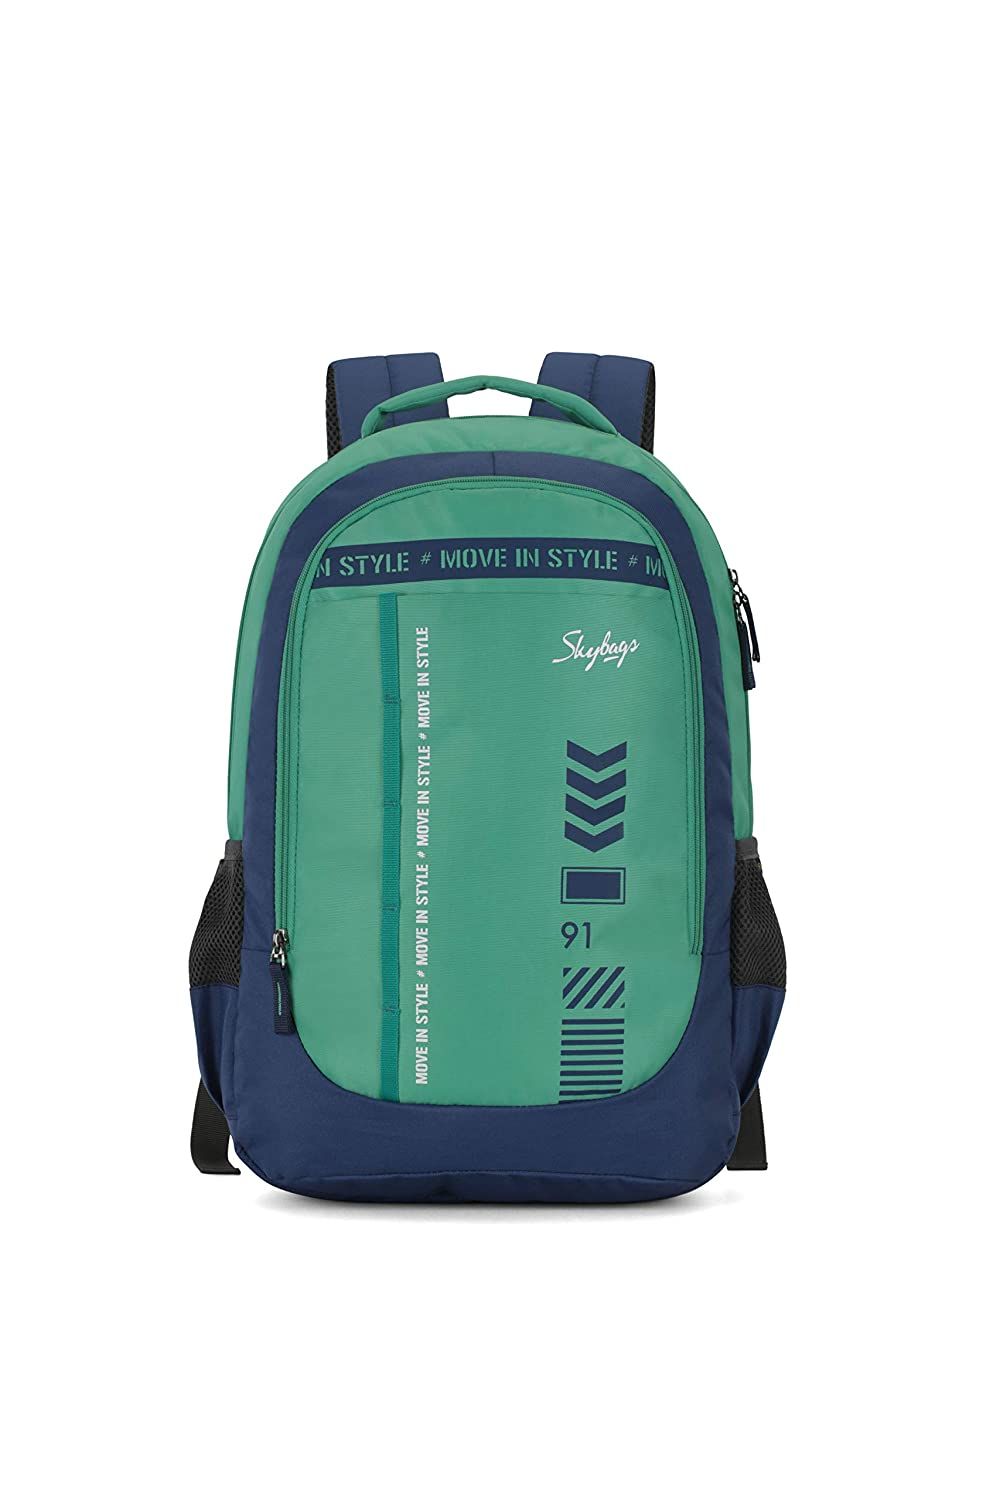 Skybags Beatle 02 27 Ltrs Green-Blue Casual Backpack